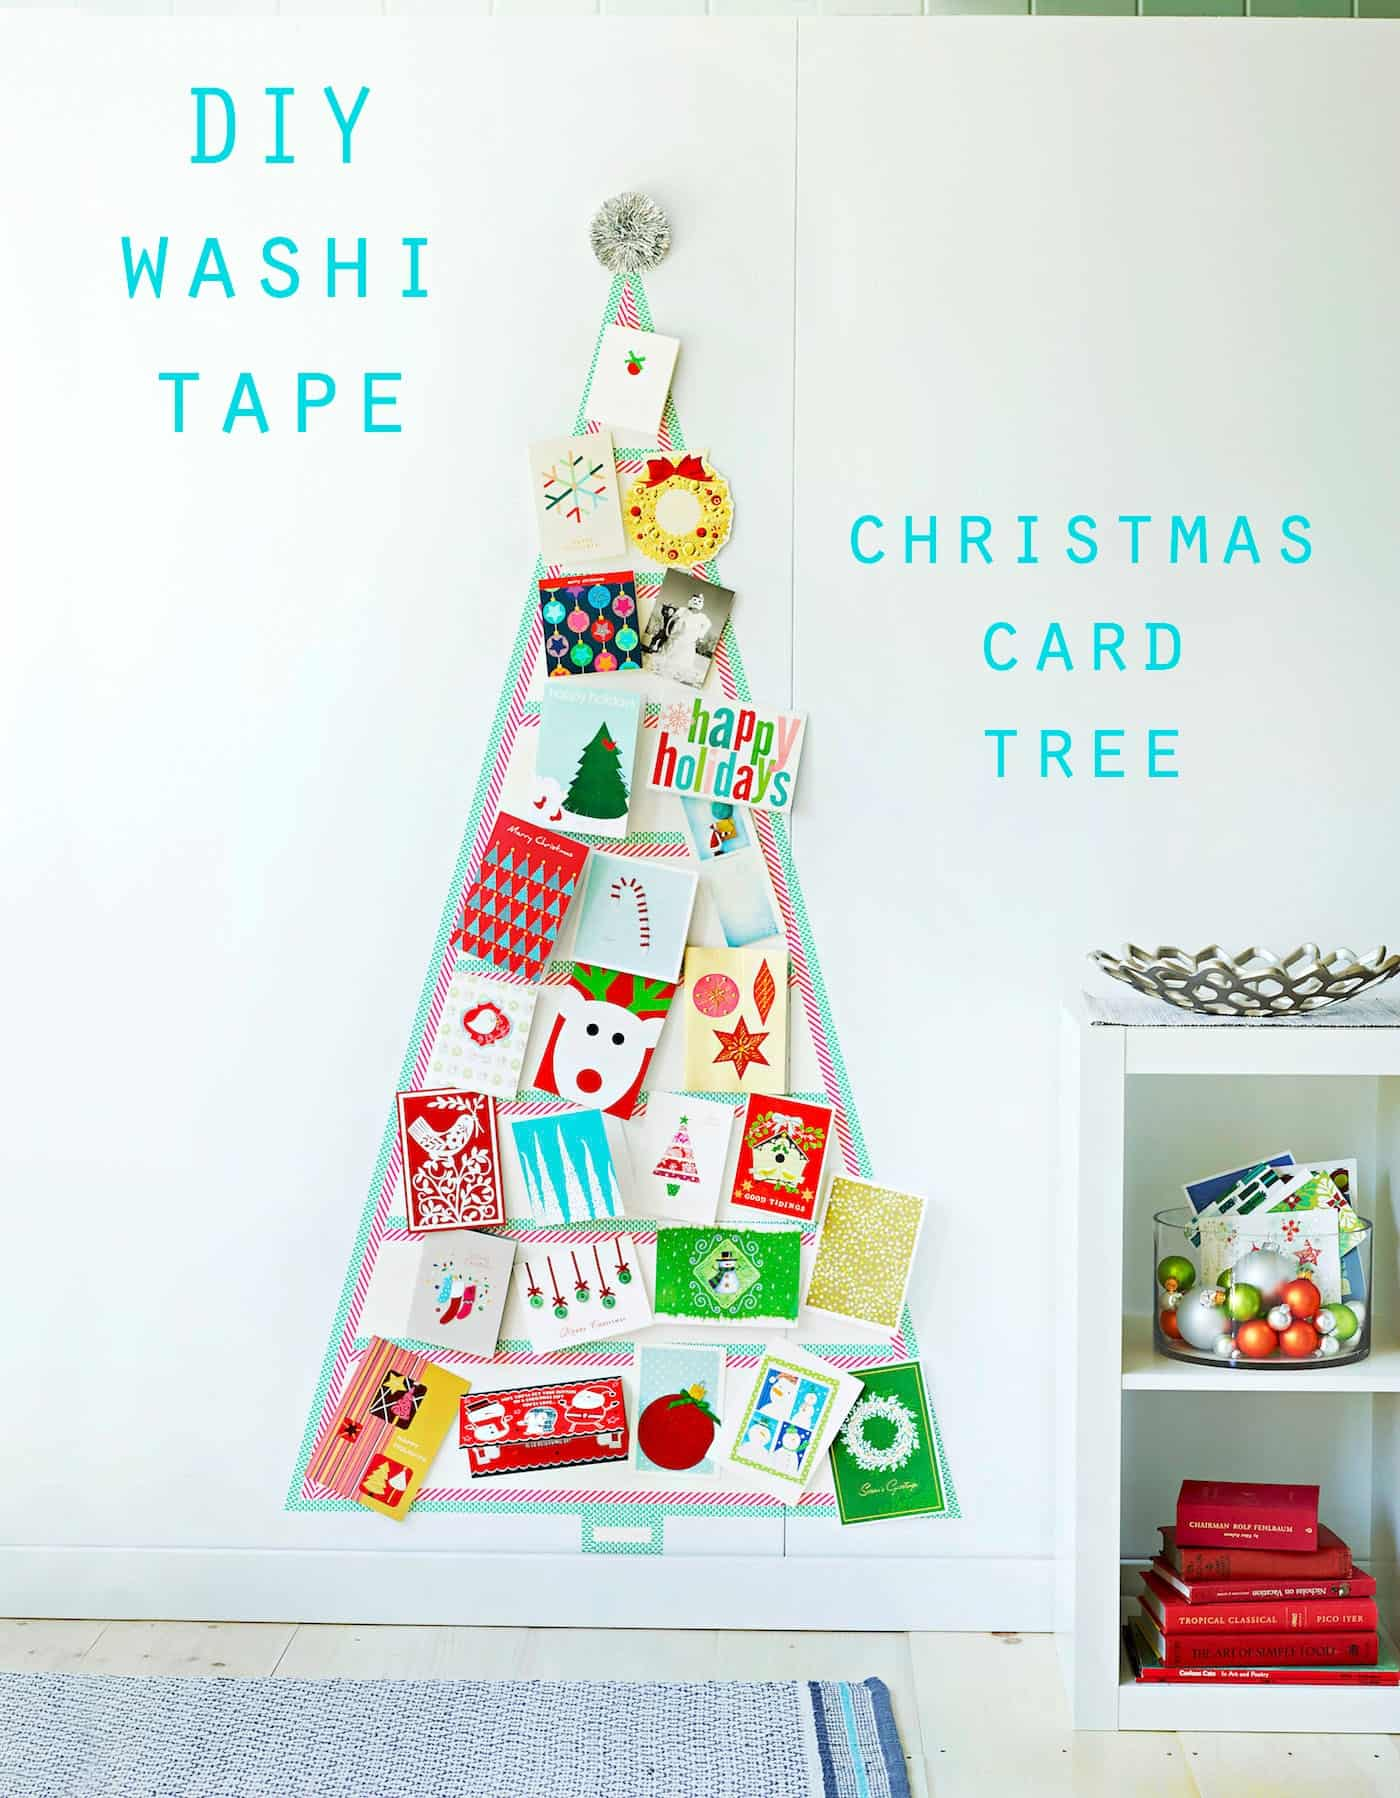 Show off all your Christmas cards in style with this creative and fun washi tape Christmas tree